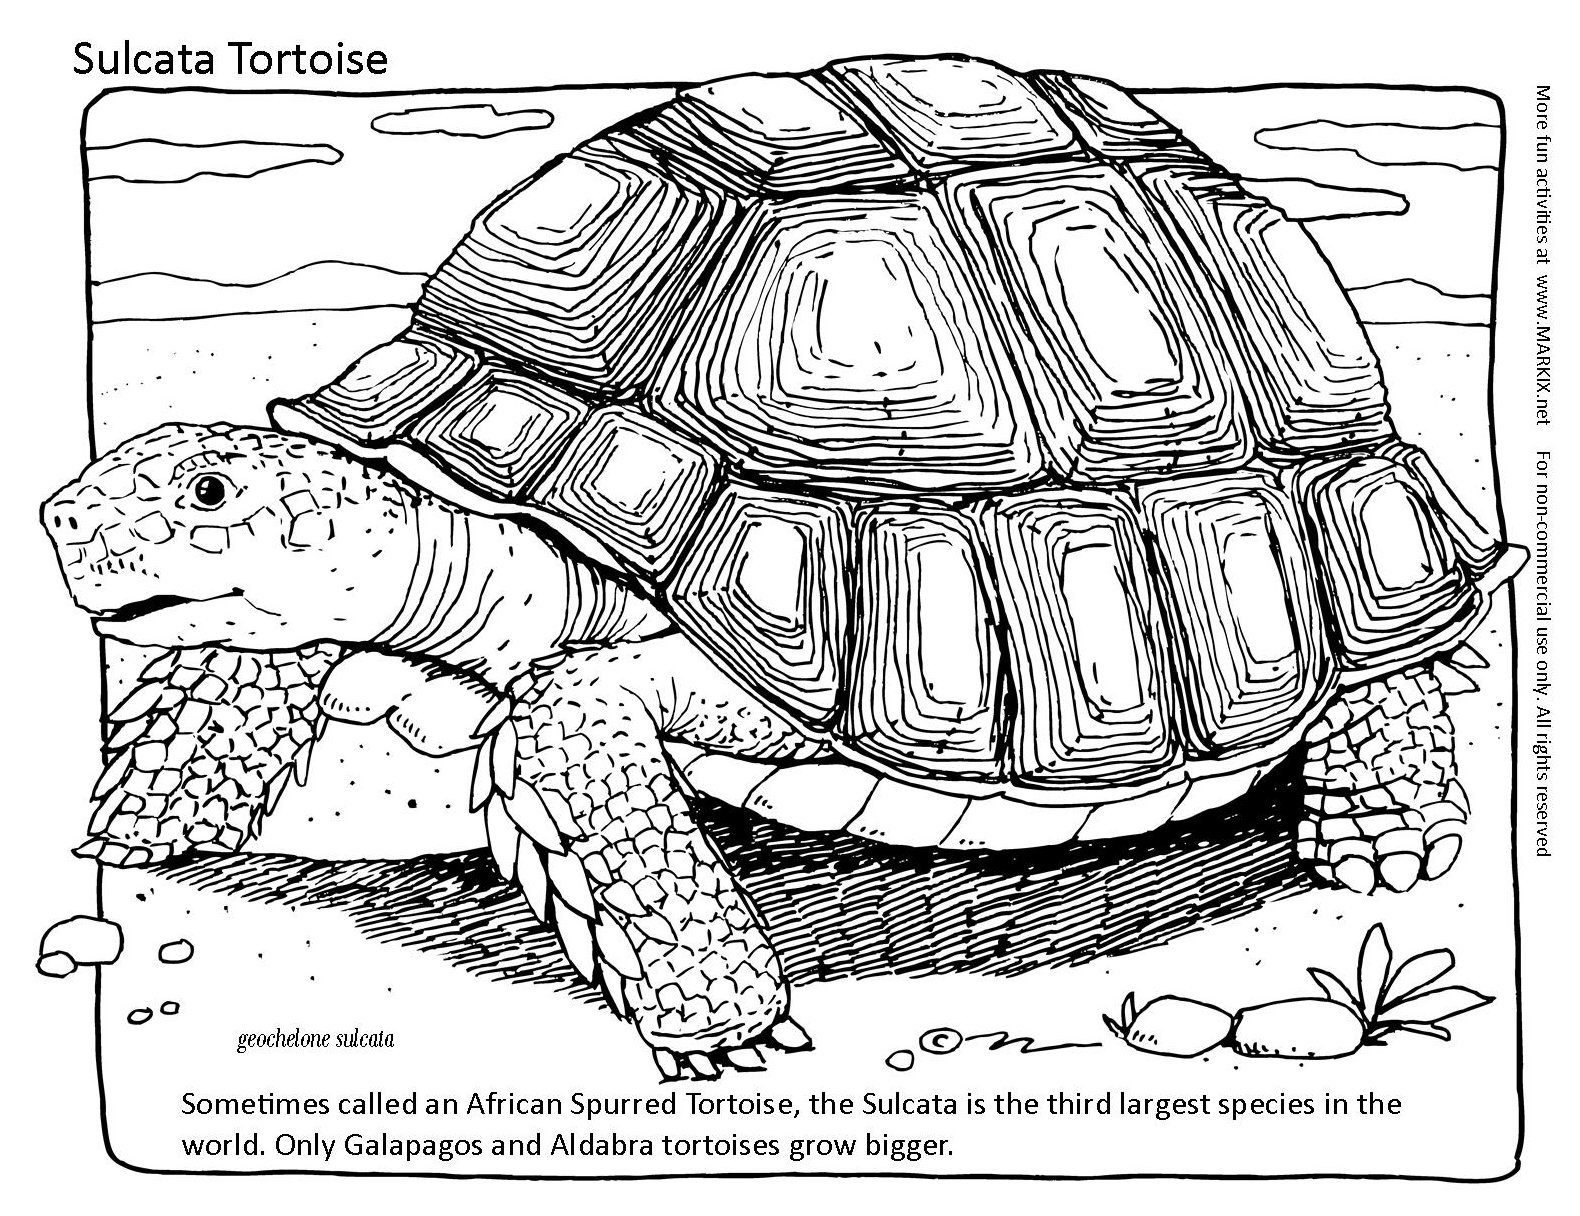 Sulcata Tortoise coloring #20, Download drawings